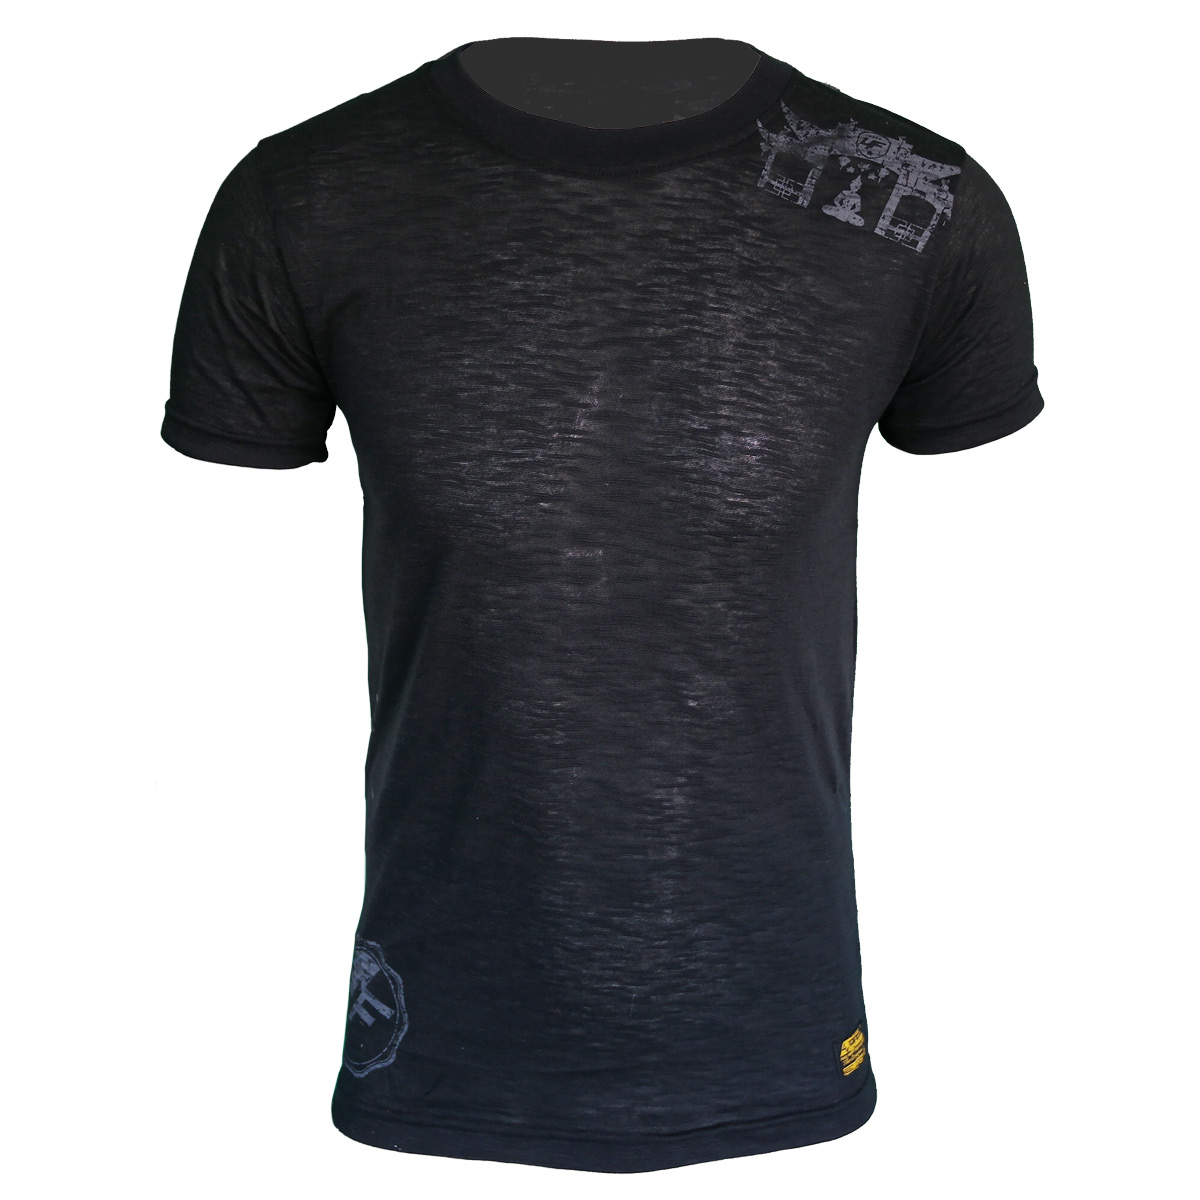 5c837464f11b54 4Fighter Tissue Round-Neck T-Shirt in black with a subtle gray temple Buddha